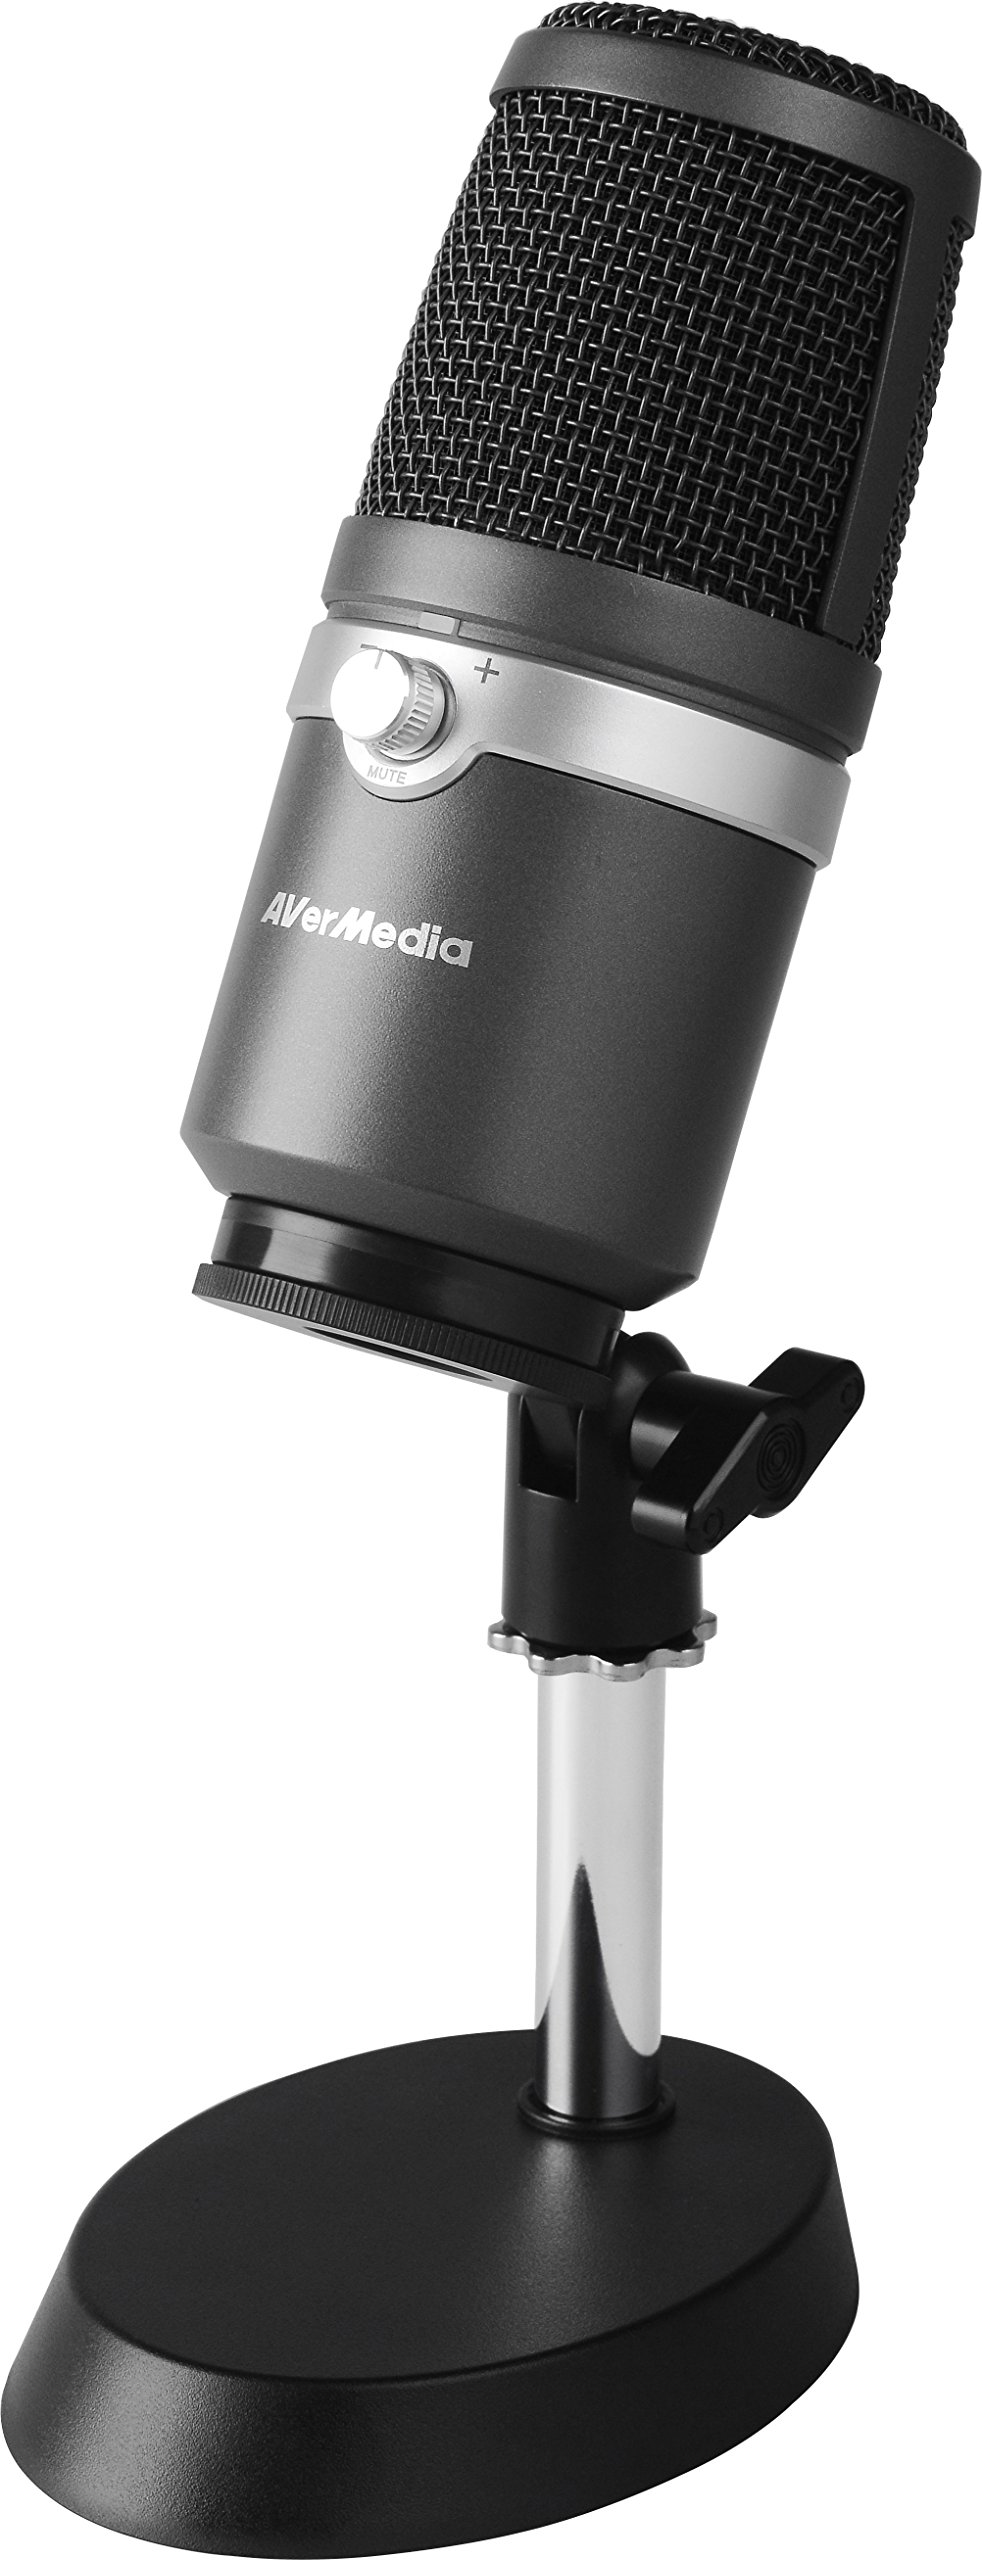 AVerMedia USB Multipurpose Microphone, for Recording, Streaming or Podcasting (AM310)